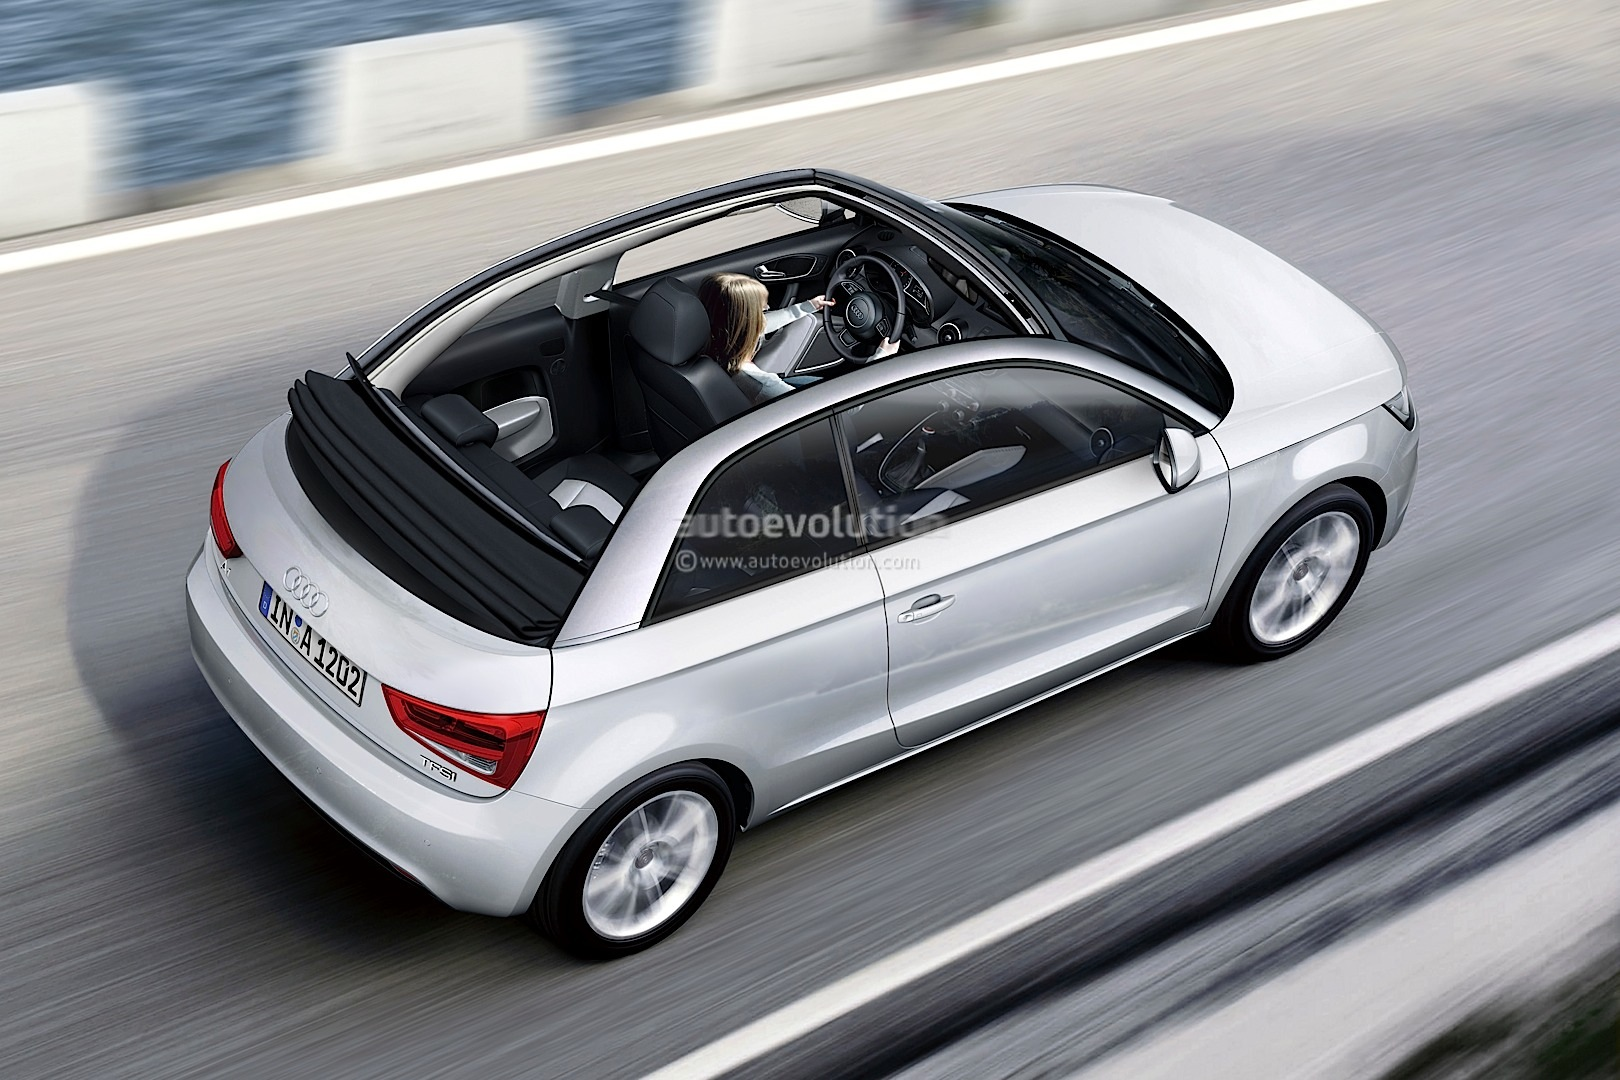 2014 audi a1 cabriolet rendering autoevolution. Black Bedroom Furniture Sets. Home Design Ideas